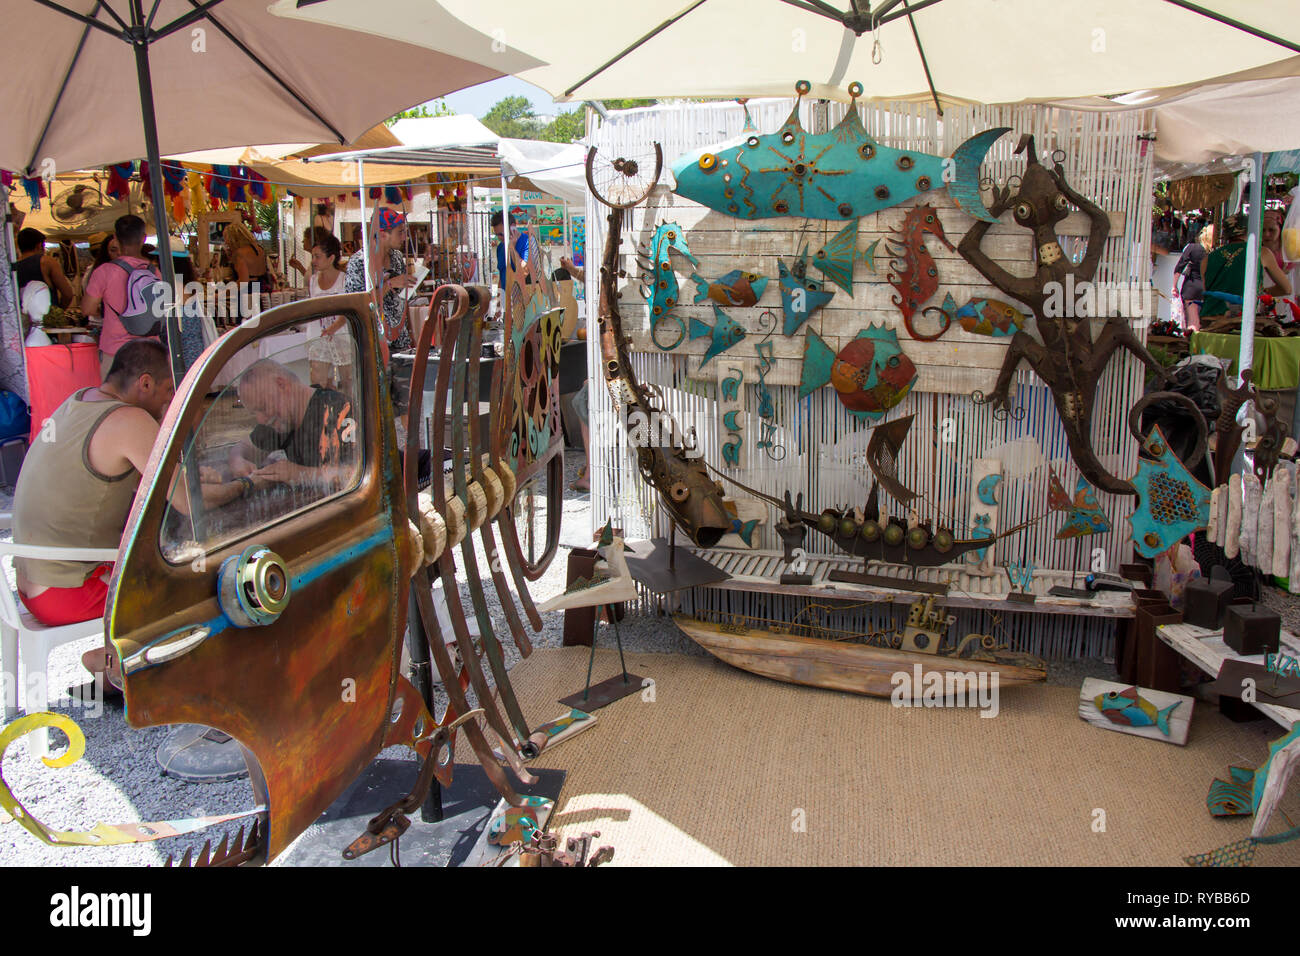 IBIZA, SPAIN - JUNE 24, 2016: Crowd of people and tourists, buying in the small Hippy market of Las Dalias in Ibiza - Stock Image